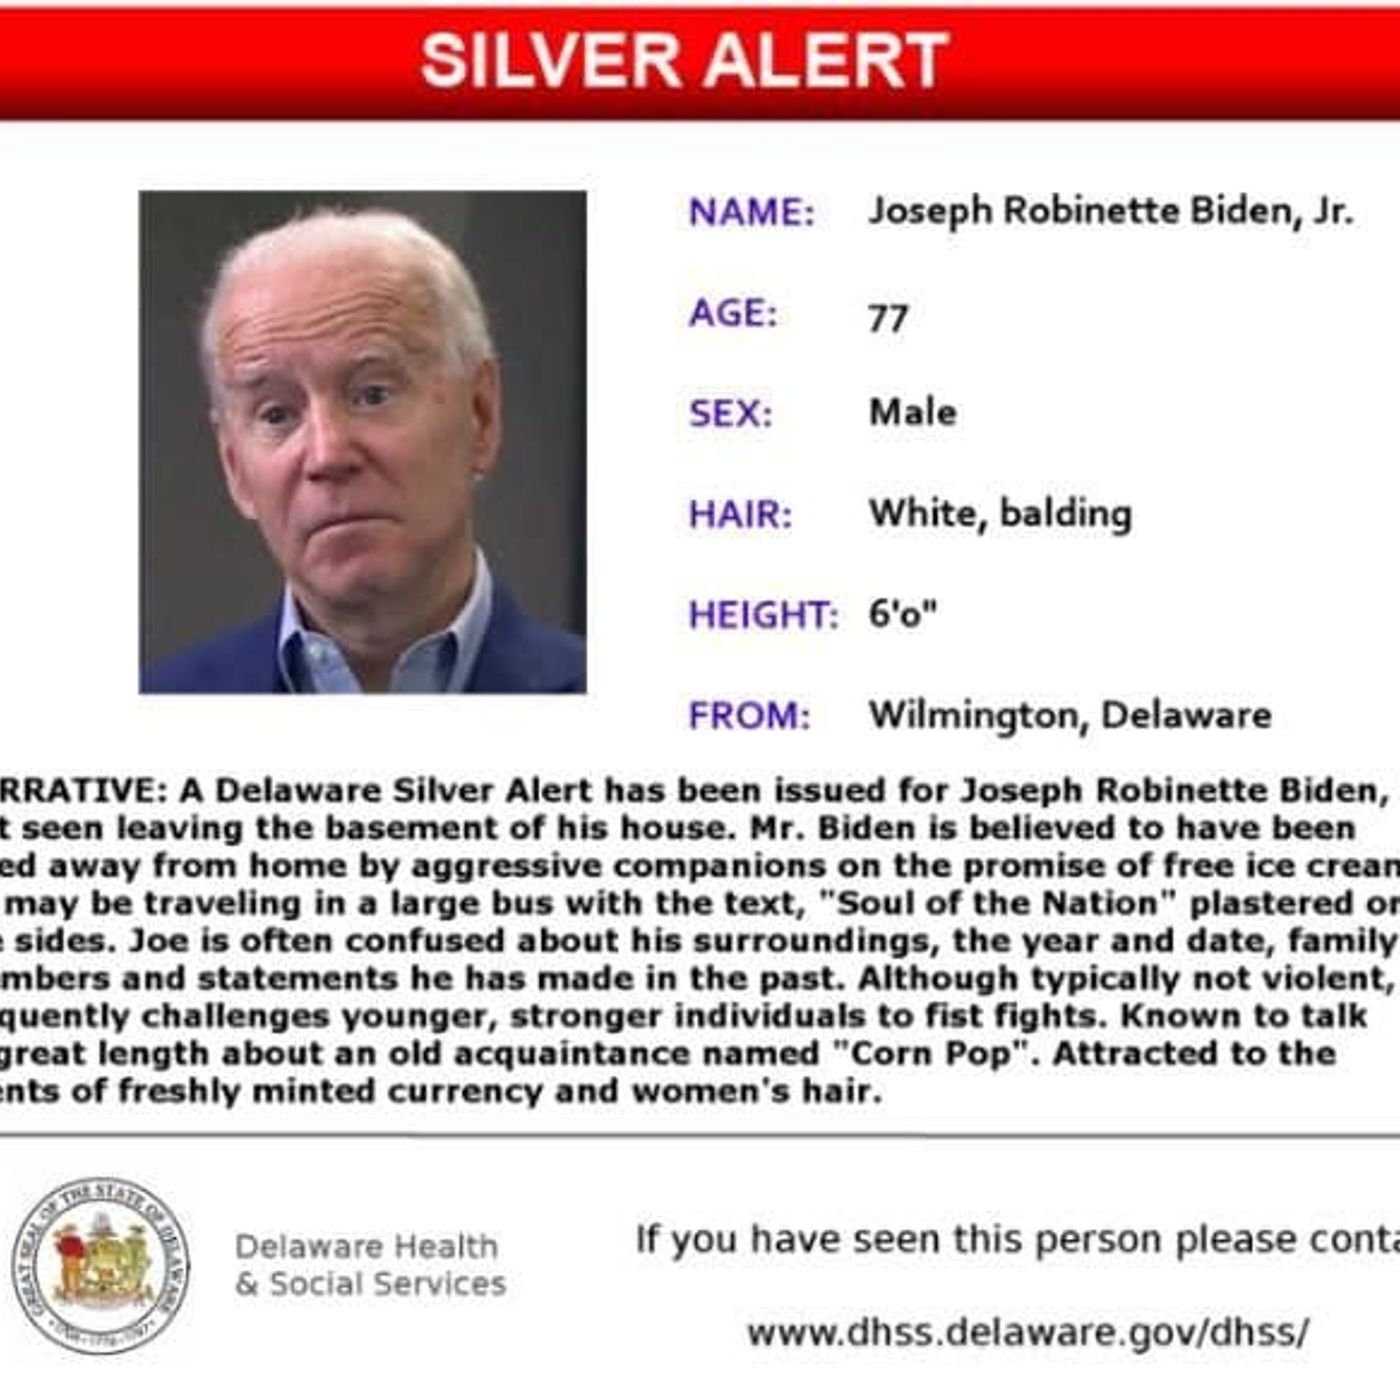 Silver Alert at the WhiteHouse